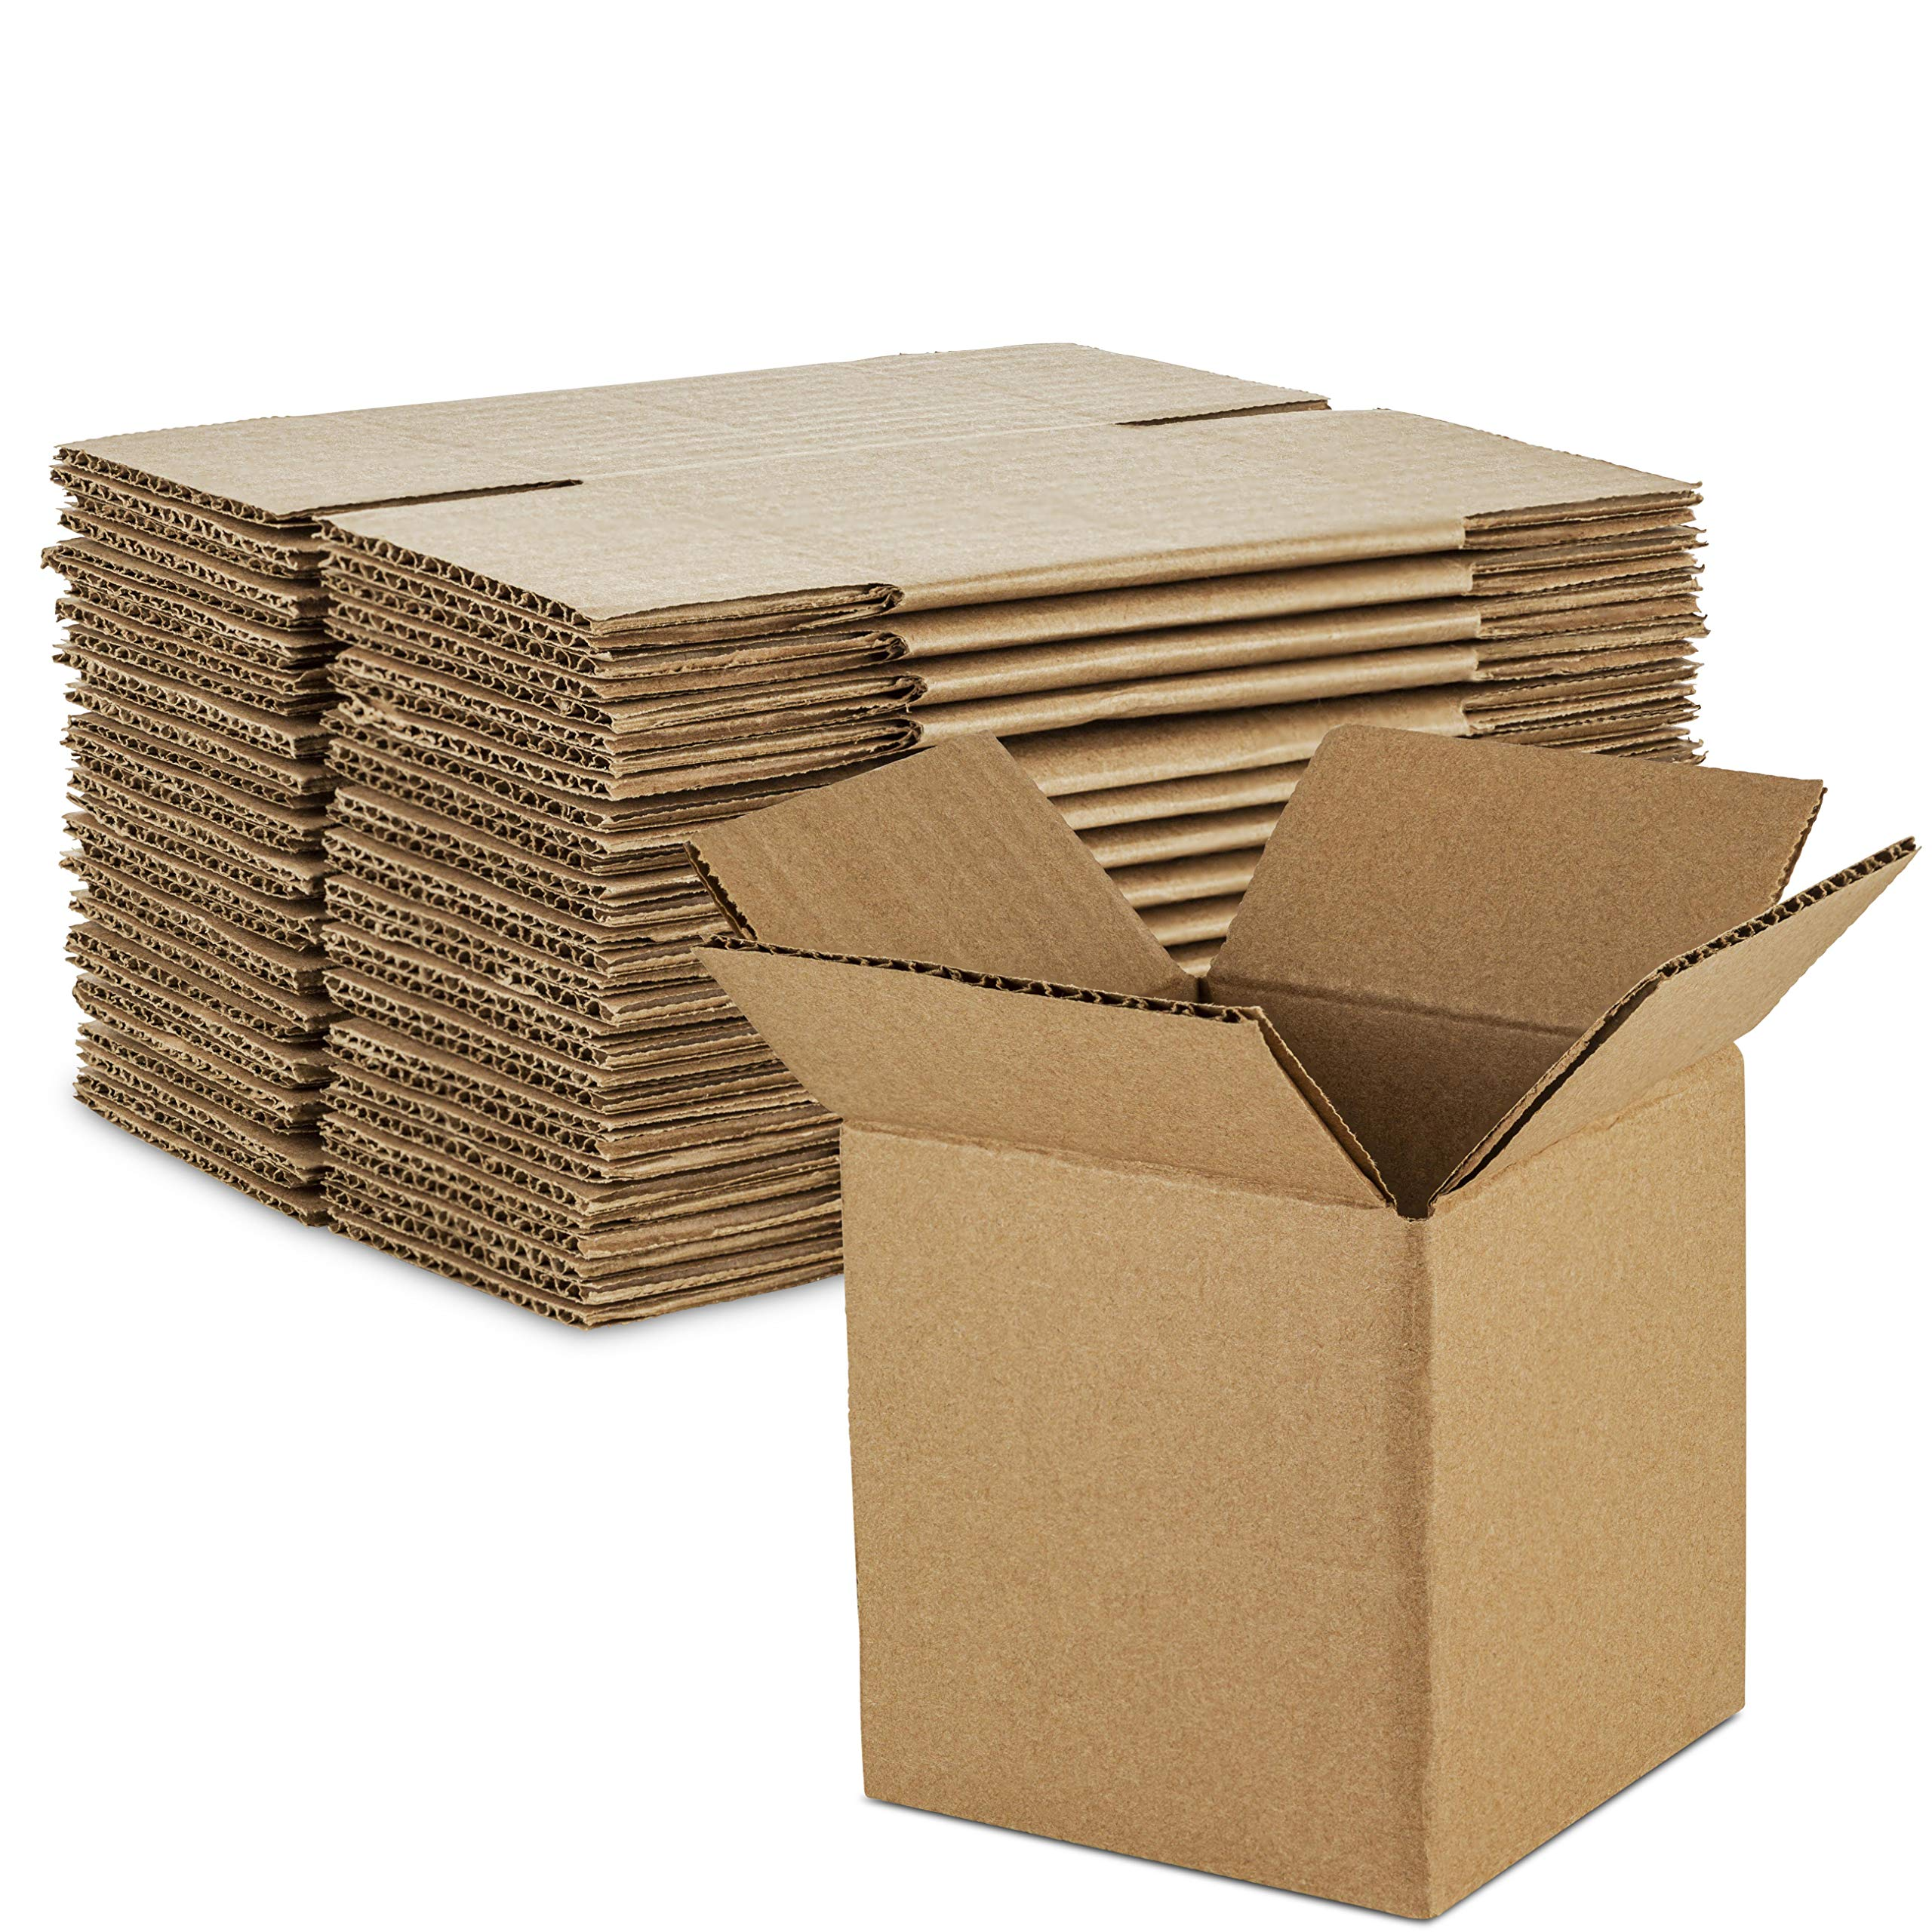 4 Length x 4 Width x 4 Height, Pack of 25 Pratt PRA0001 Recycled Corrugated Cardboard Single Wall Standard Cube Box with C Flute